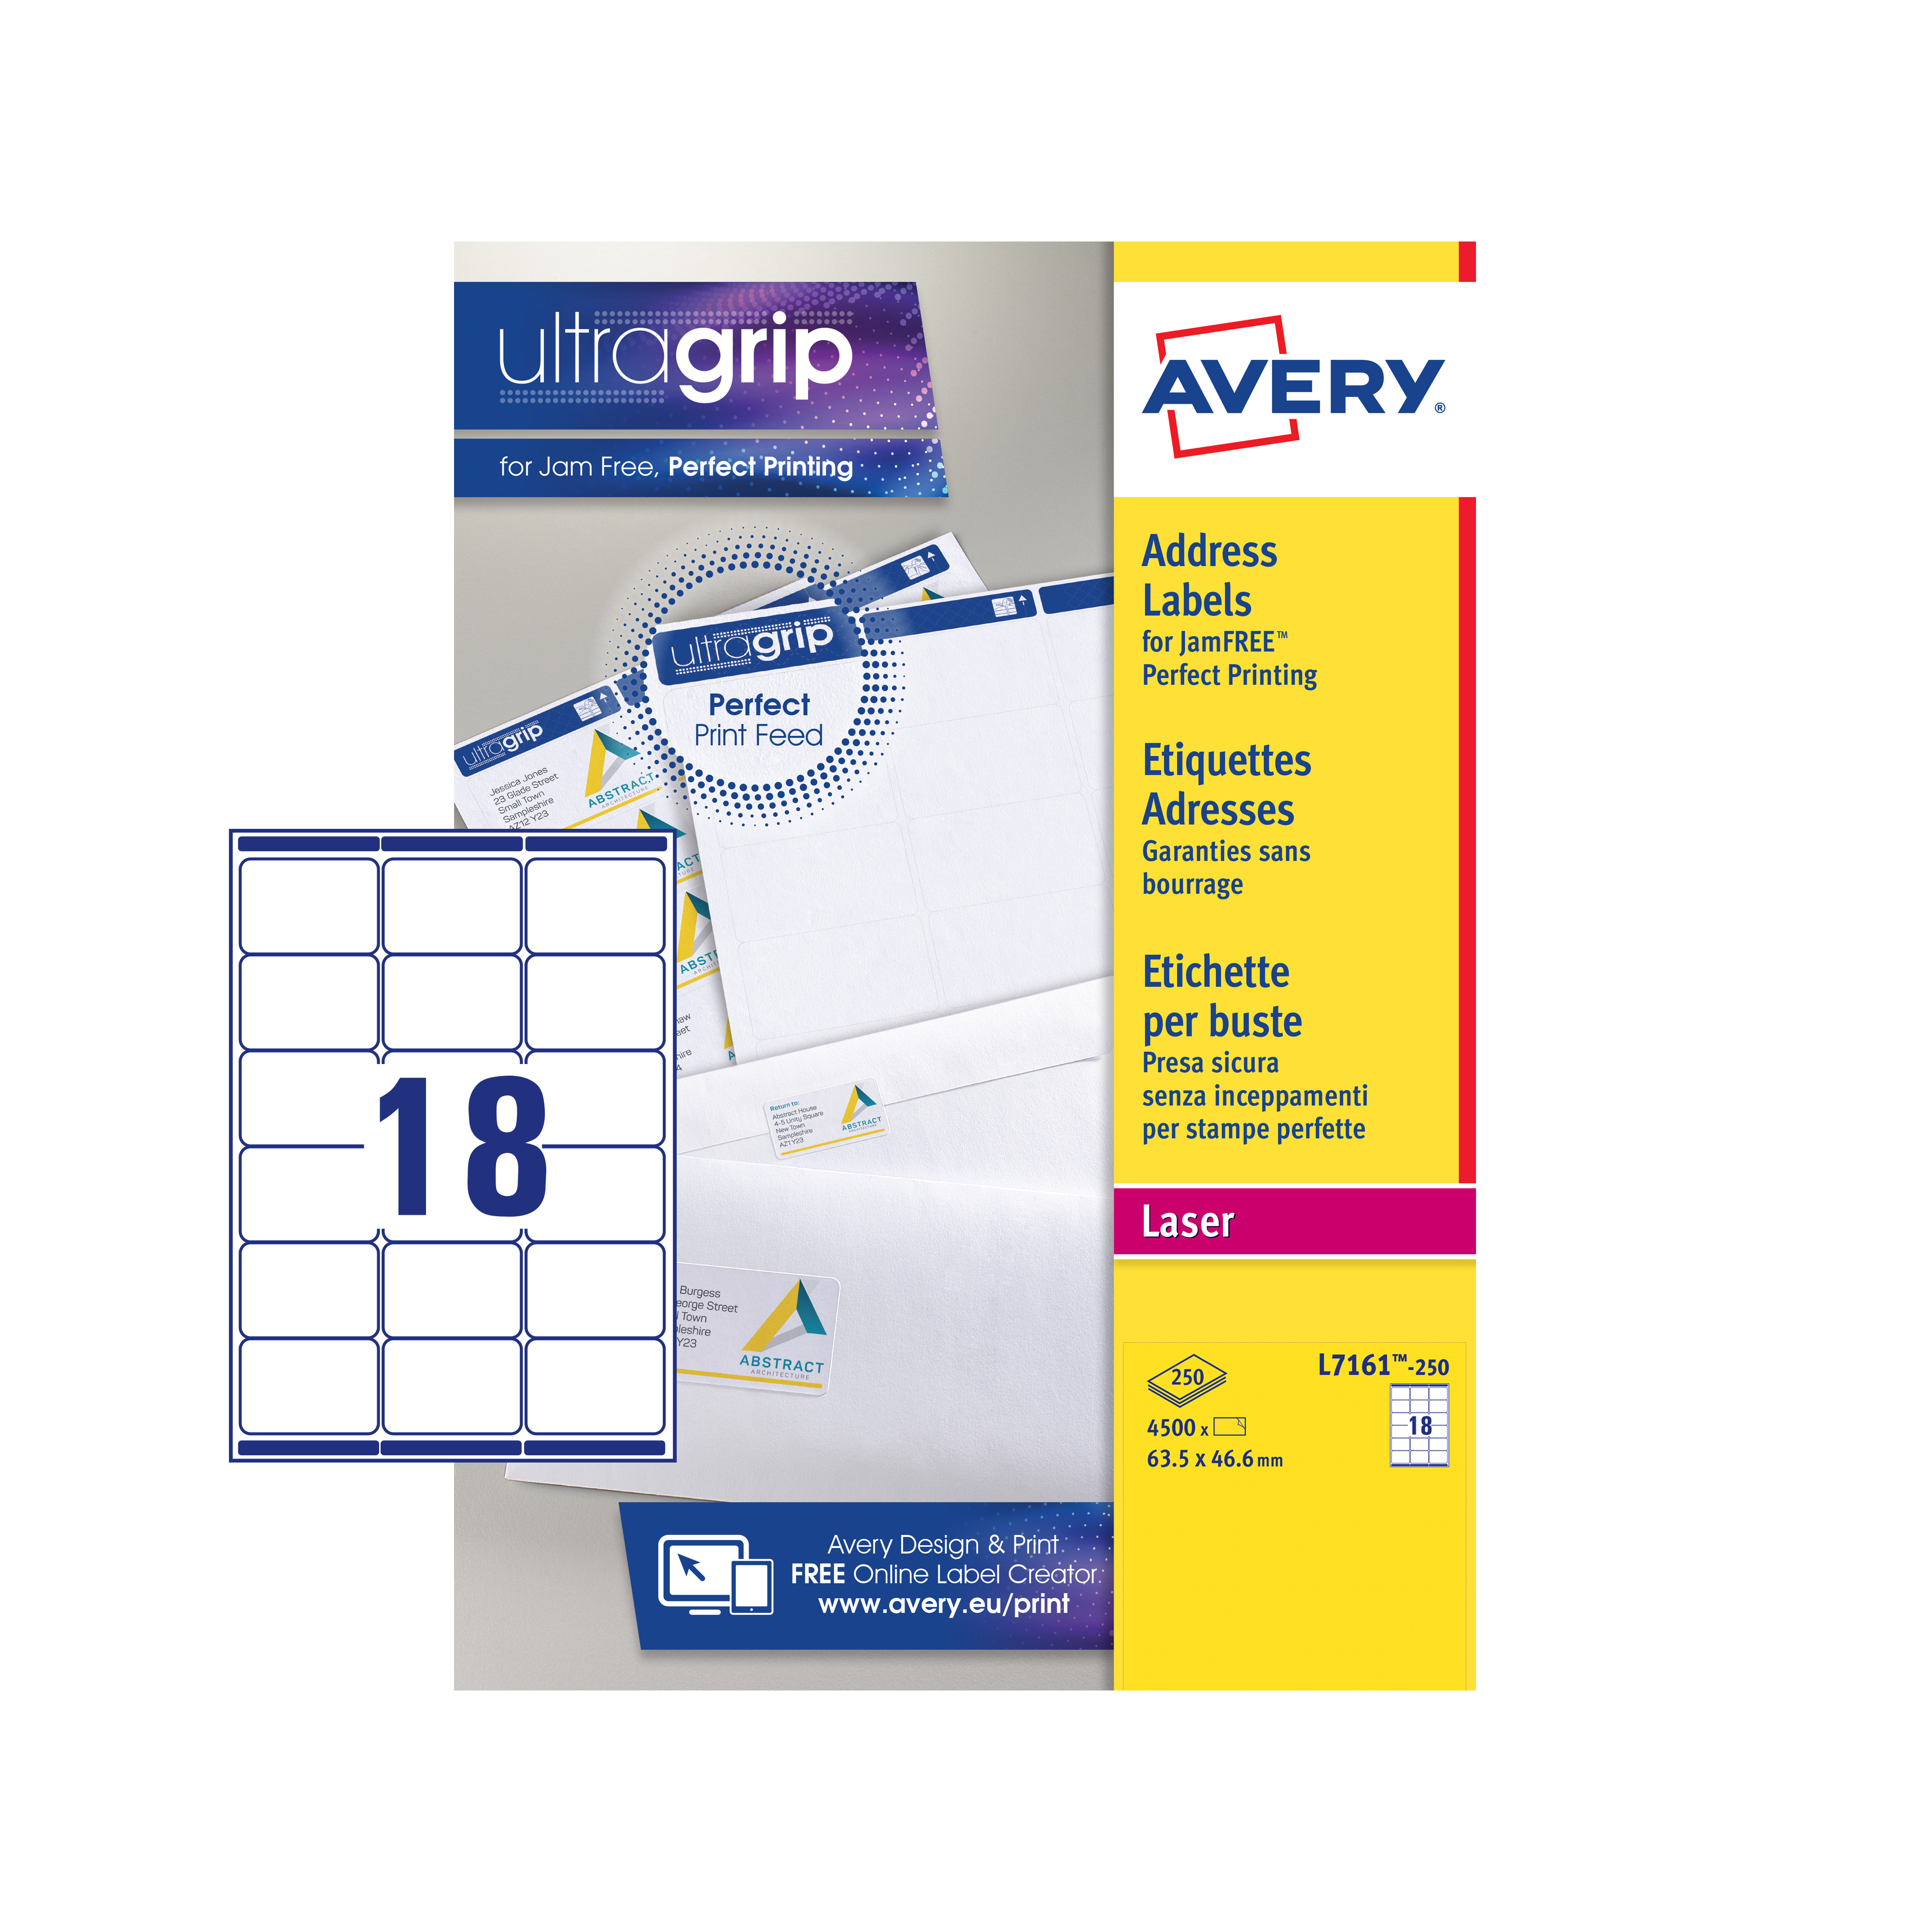 Avery Addressing Labels Laser Jam-free 18 per Sheet 63.5x46.6mm White Ref L7161-250 4500 Labels